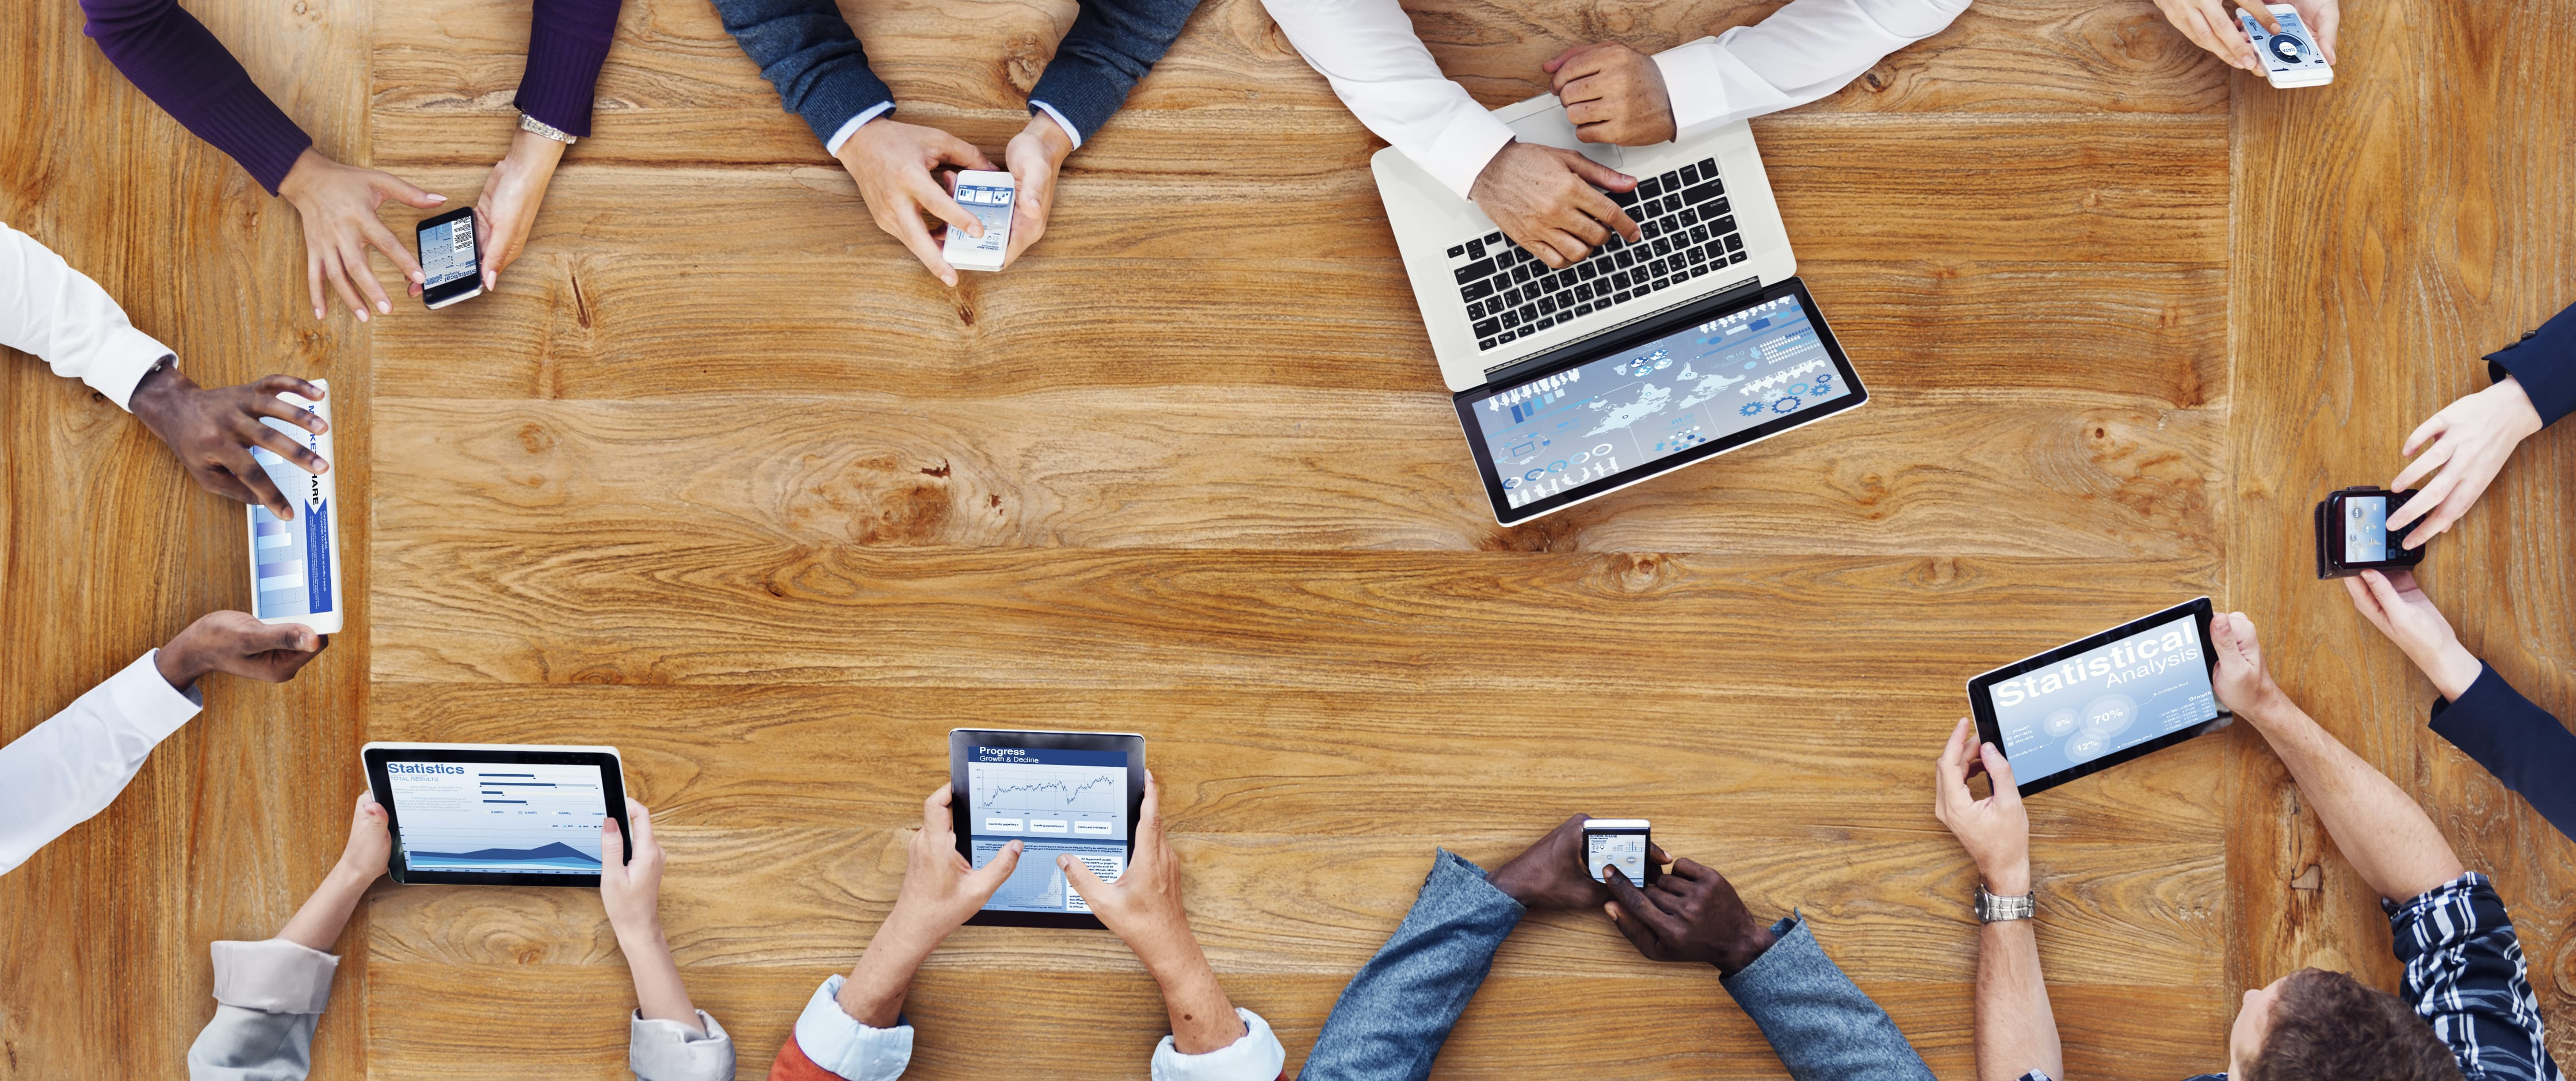 Blog post image pertaining to 6 Apps that will make your employees more efficient